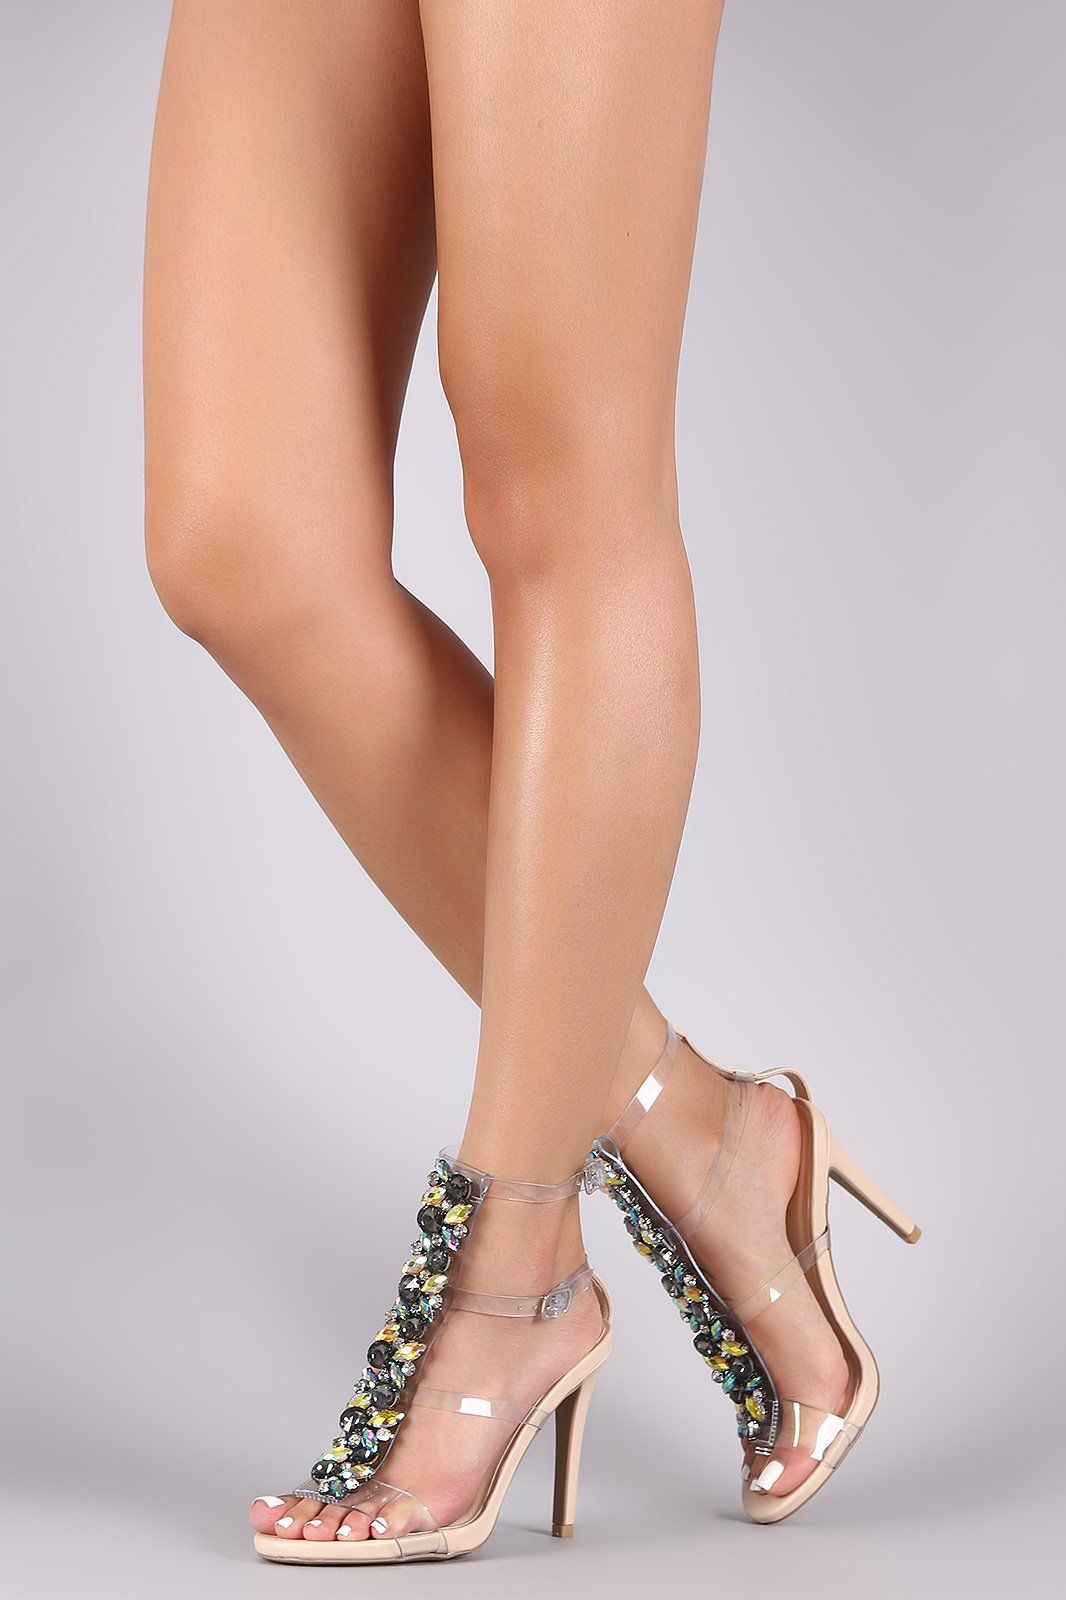 aaff0805d6ac1f Qupid Jeweled Clear Straps Stiletto Heels. These dazzling heels feature a  strappy clear design with jewels accent